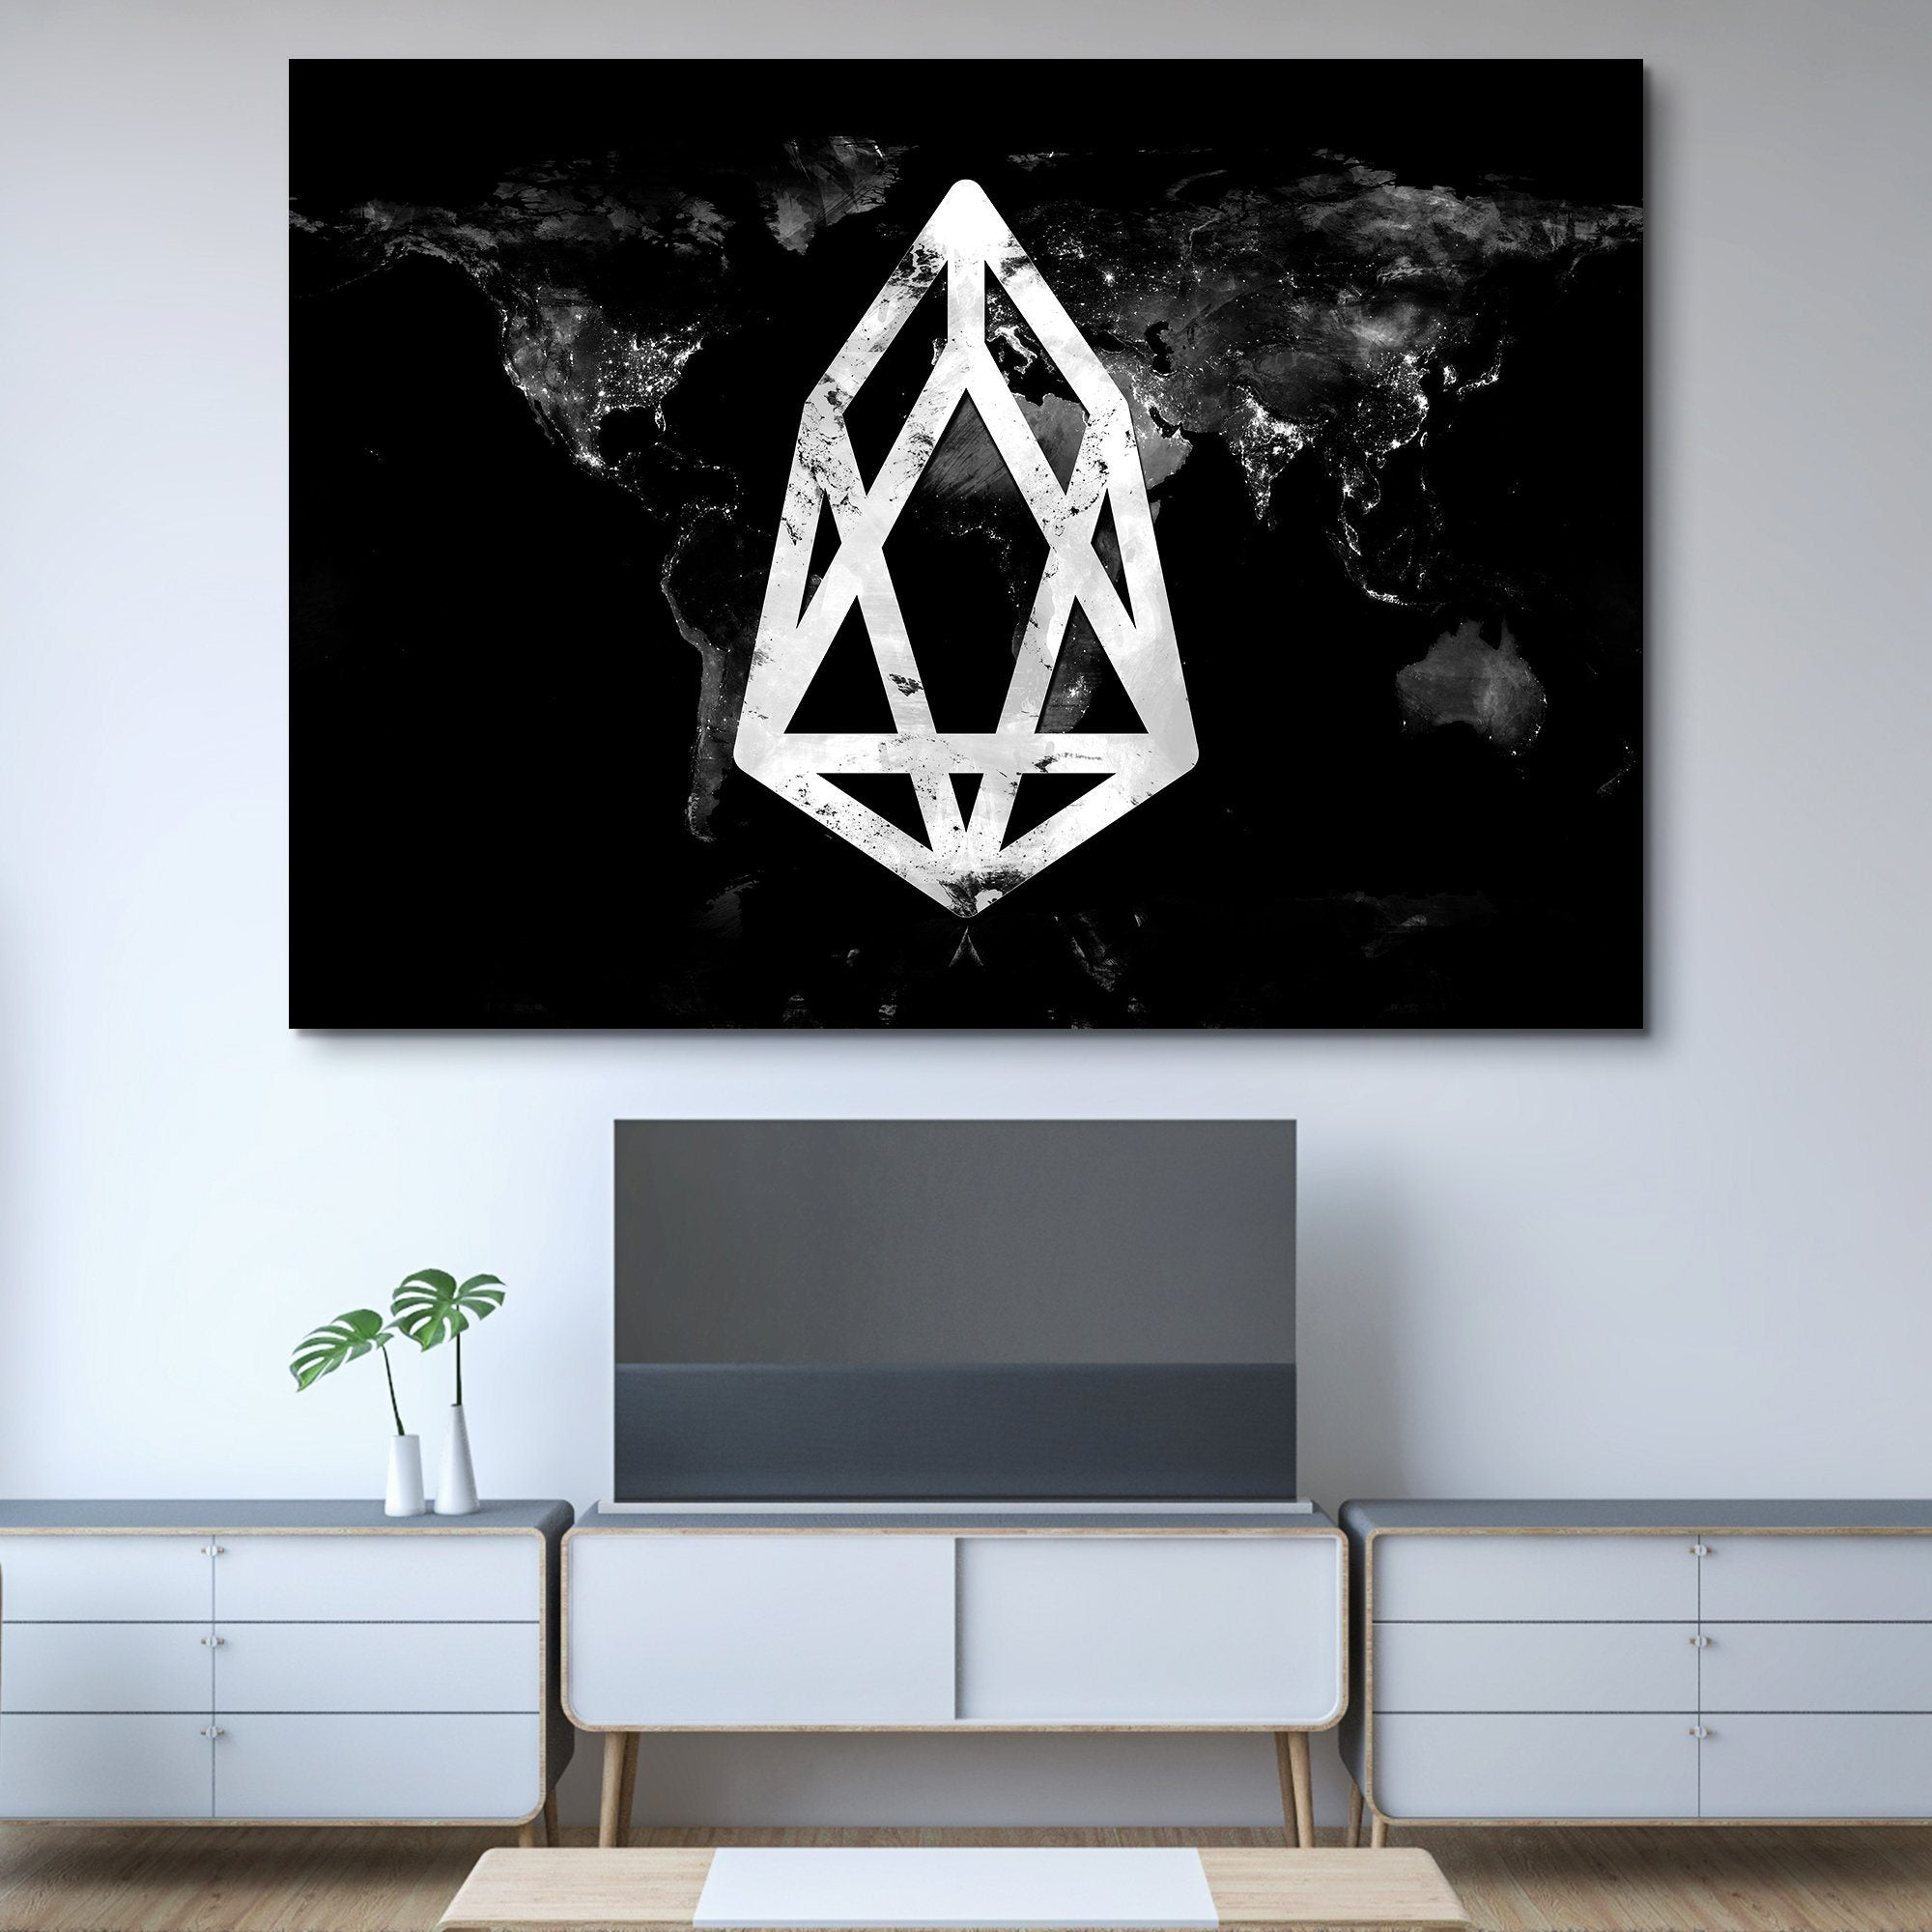 EOS Black Marble Series wall art